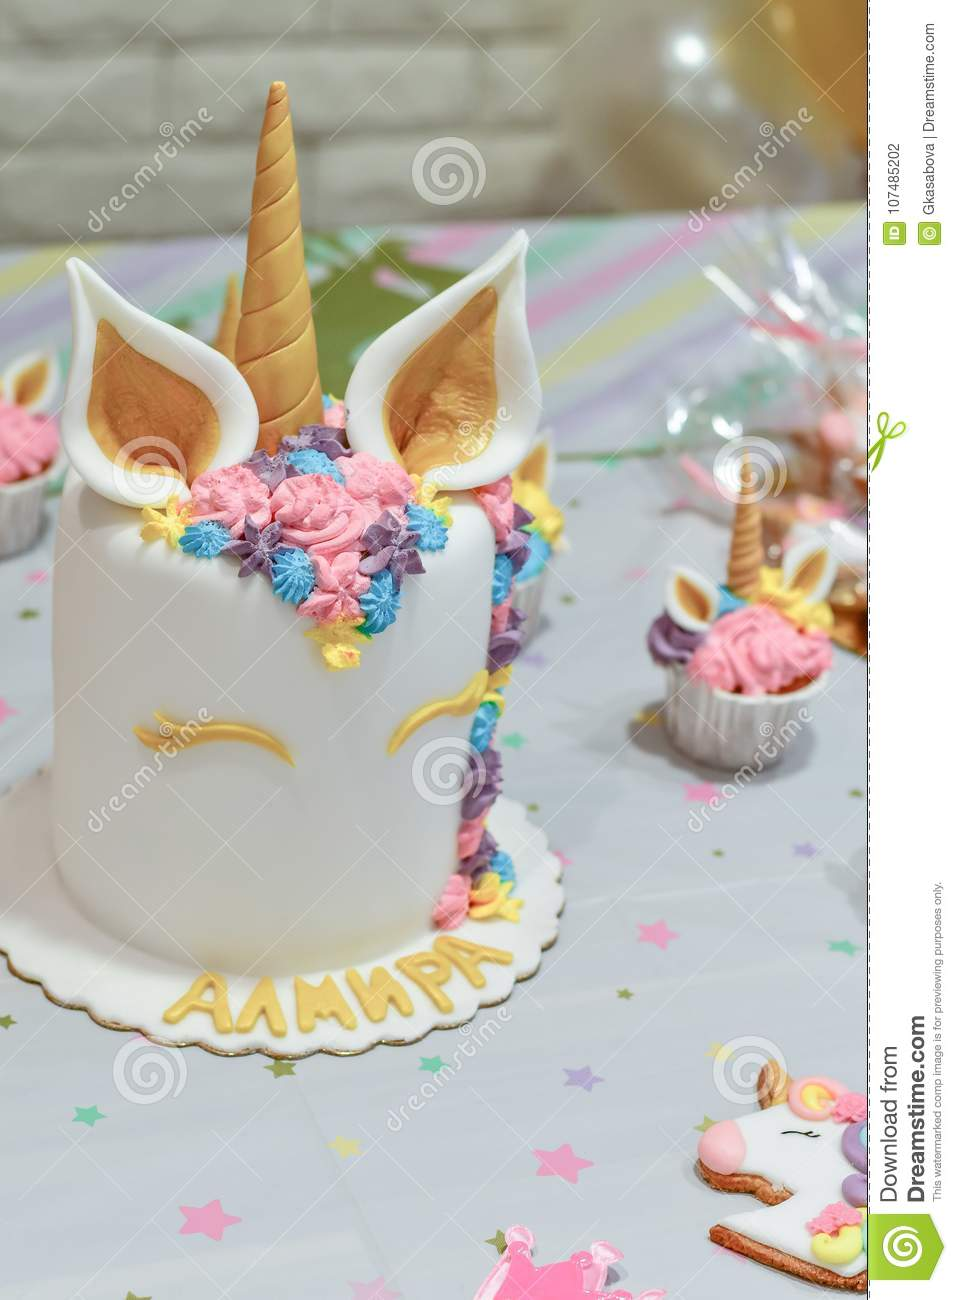 Kids Birthday Party Decoration And Cake Decorated Table For Child Celebration Rainbow Unicorn Cupcake